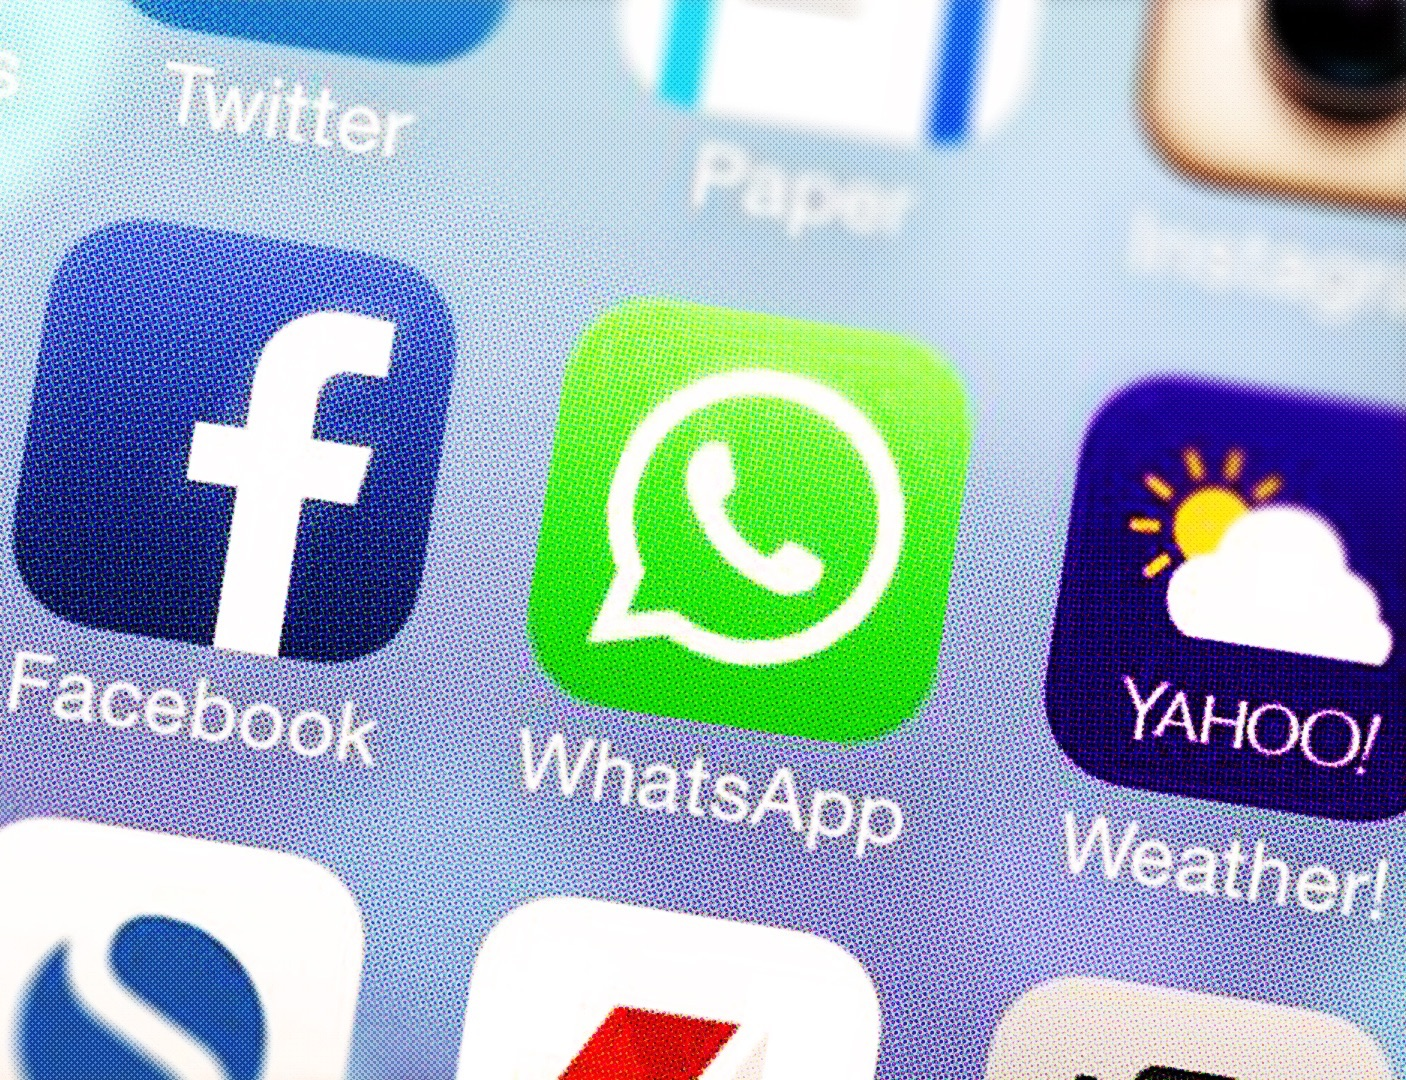 3026678-poster-p-1-facebook-is-buying-whatsapp-for-16-billion